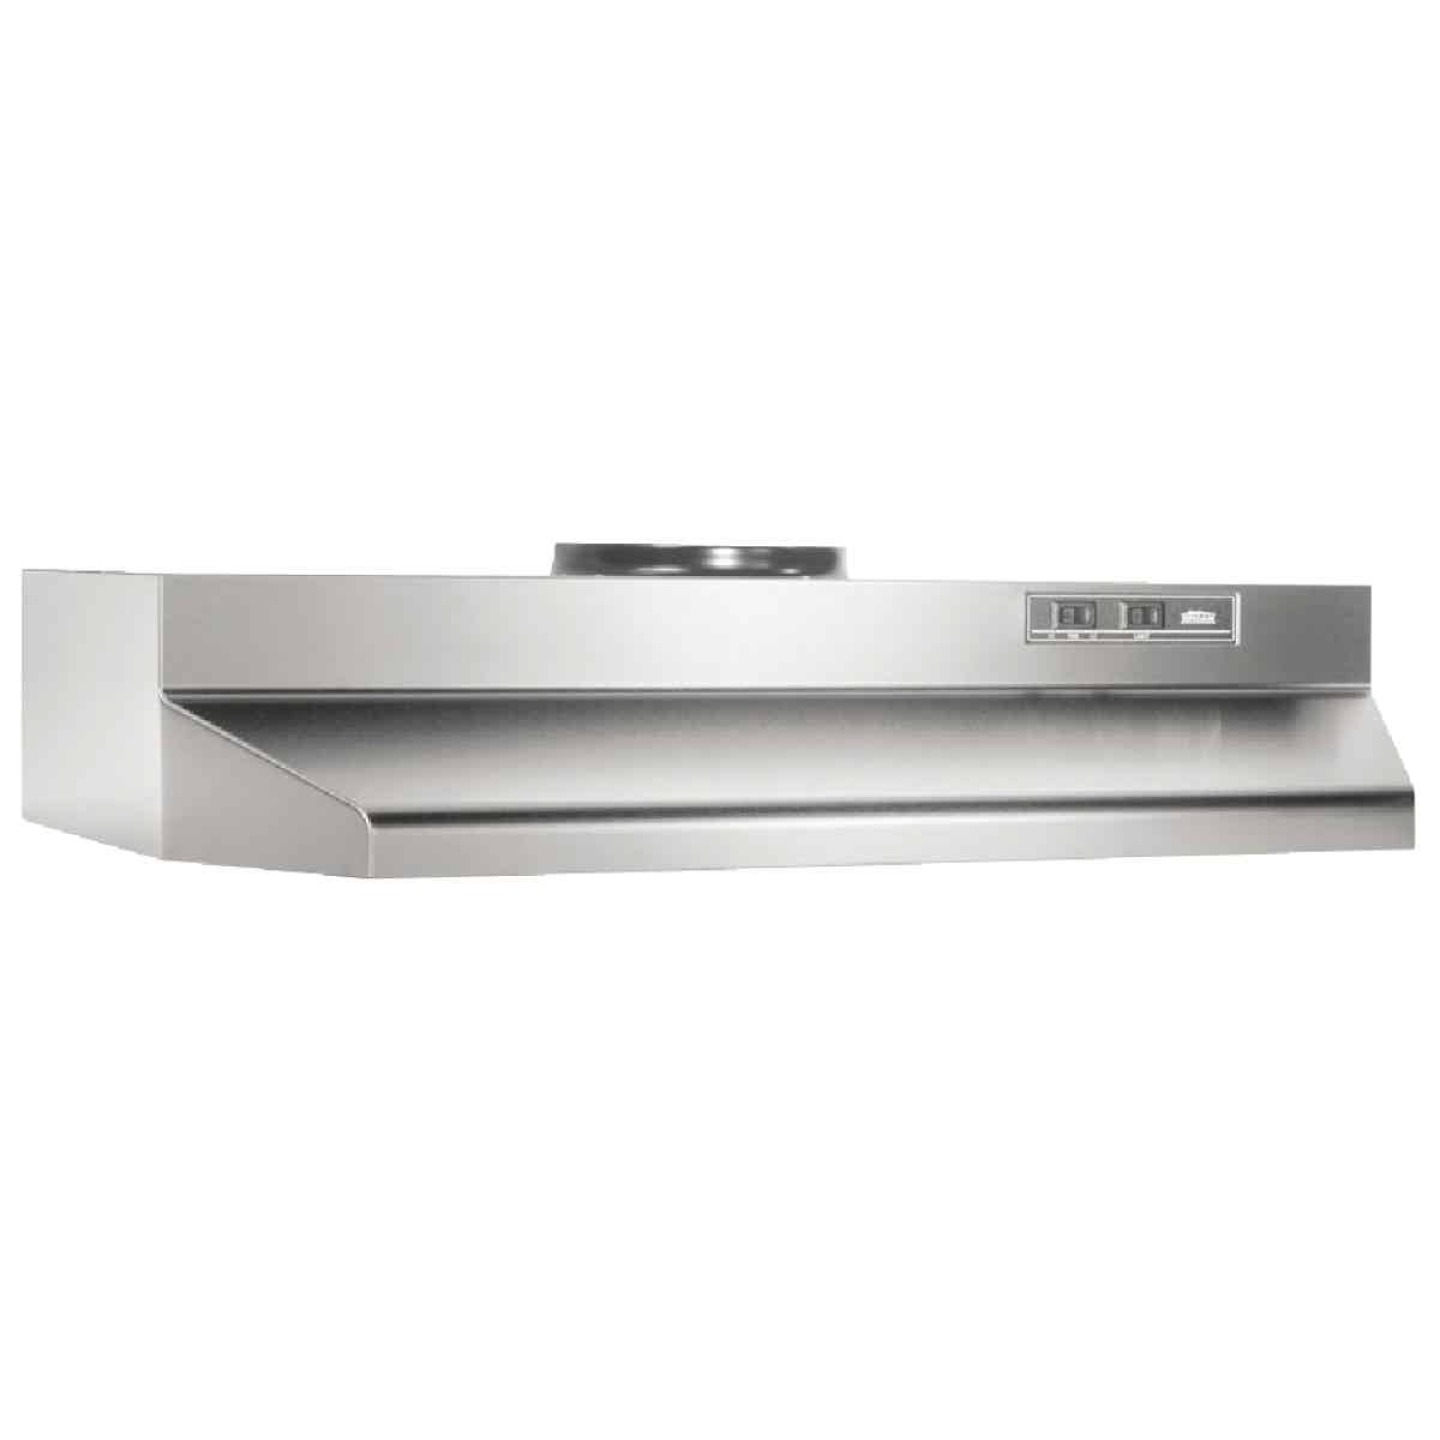 Broan-Nutone F Series 30 In. Convertible Stainless Steel Range Hood Image 1